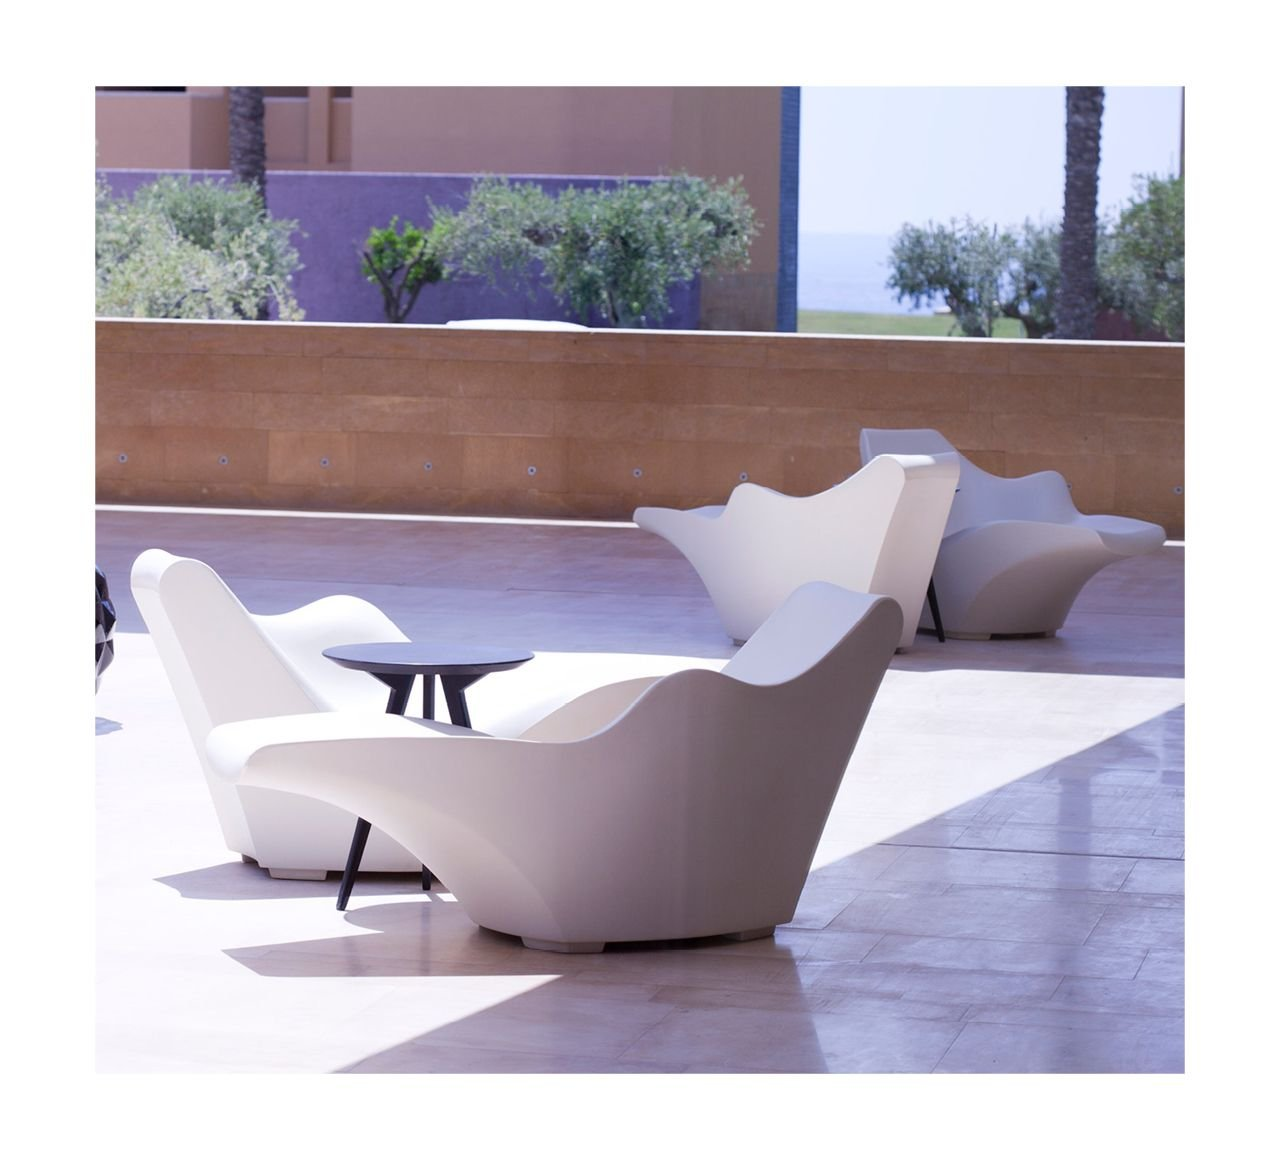 Tokyo-Pop Daybed from Driade